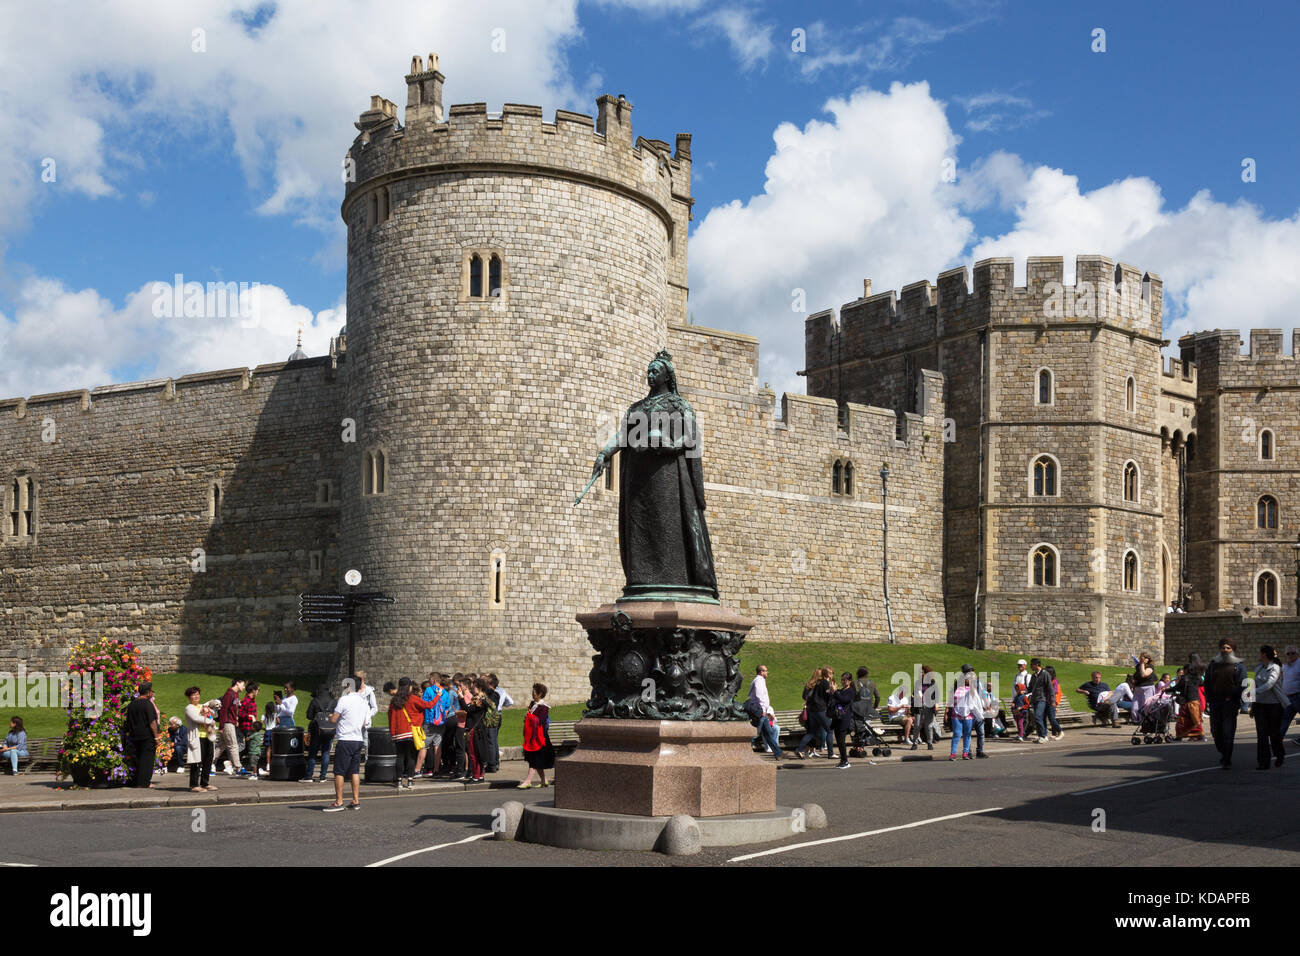 Windsor Castle and statue of Queen Victoria, Windsor, Berkshire UK - Stock Image